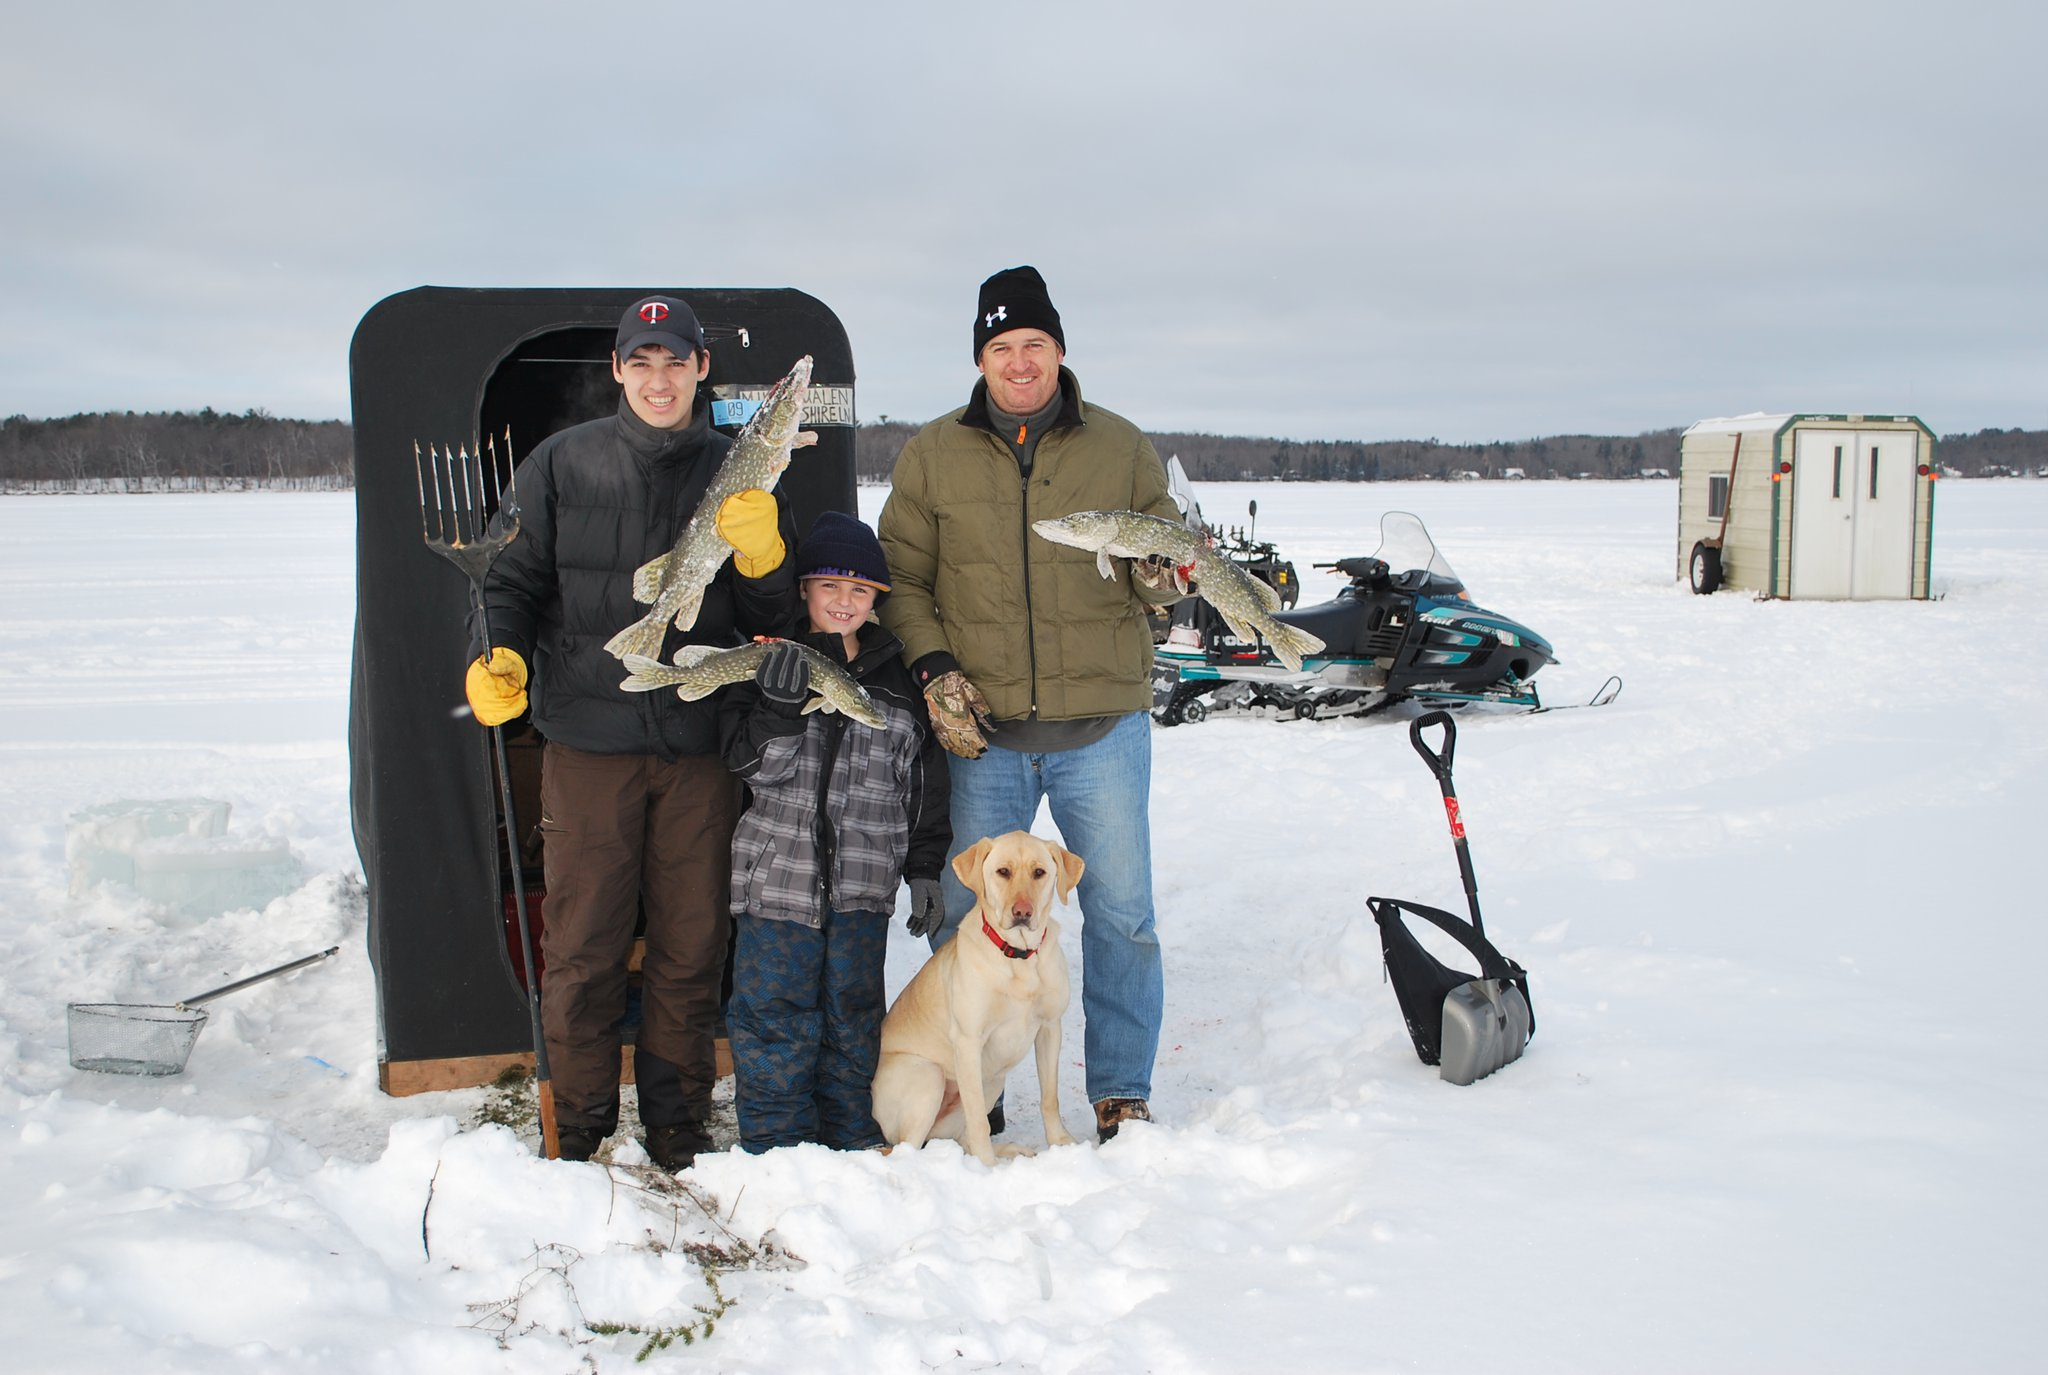 Fishing Christmas 2010 on Gull Lake, MN